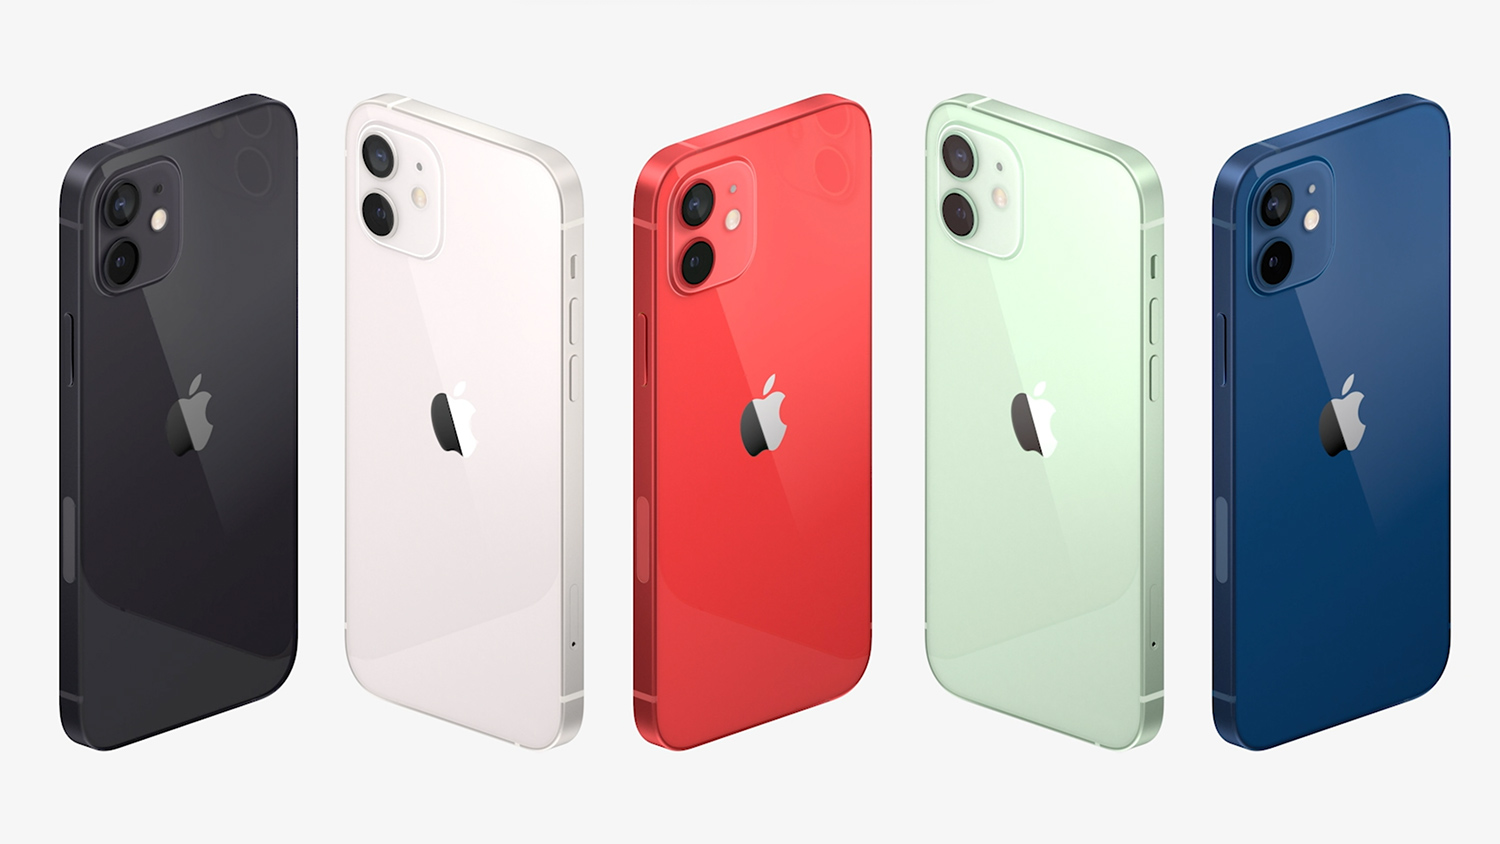 Apple iPhone 12: преемник iPhone 11 с дизайном iPhone 4, чипом A14 Bionic и 5G за $799